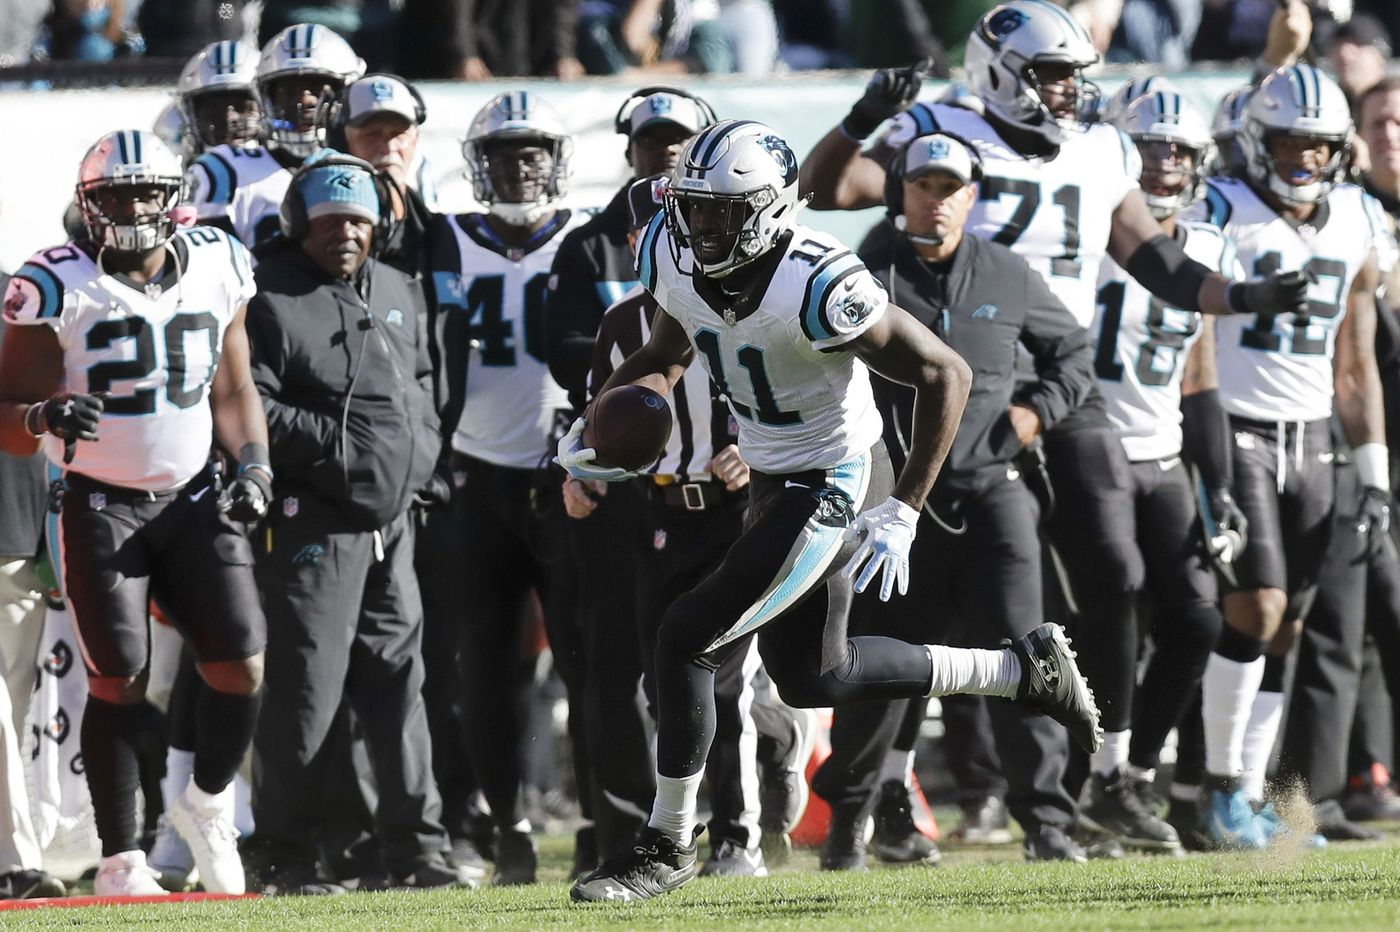 Panthers offense on Eagles' fourth-quarter collapse: 'They got comfortable. They got too relaxed'